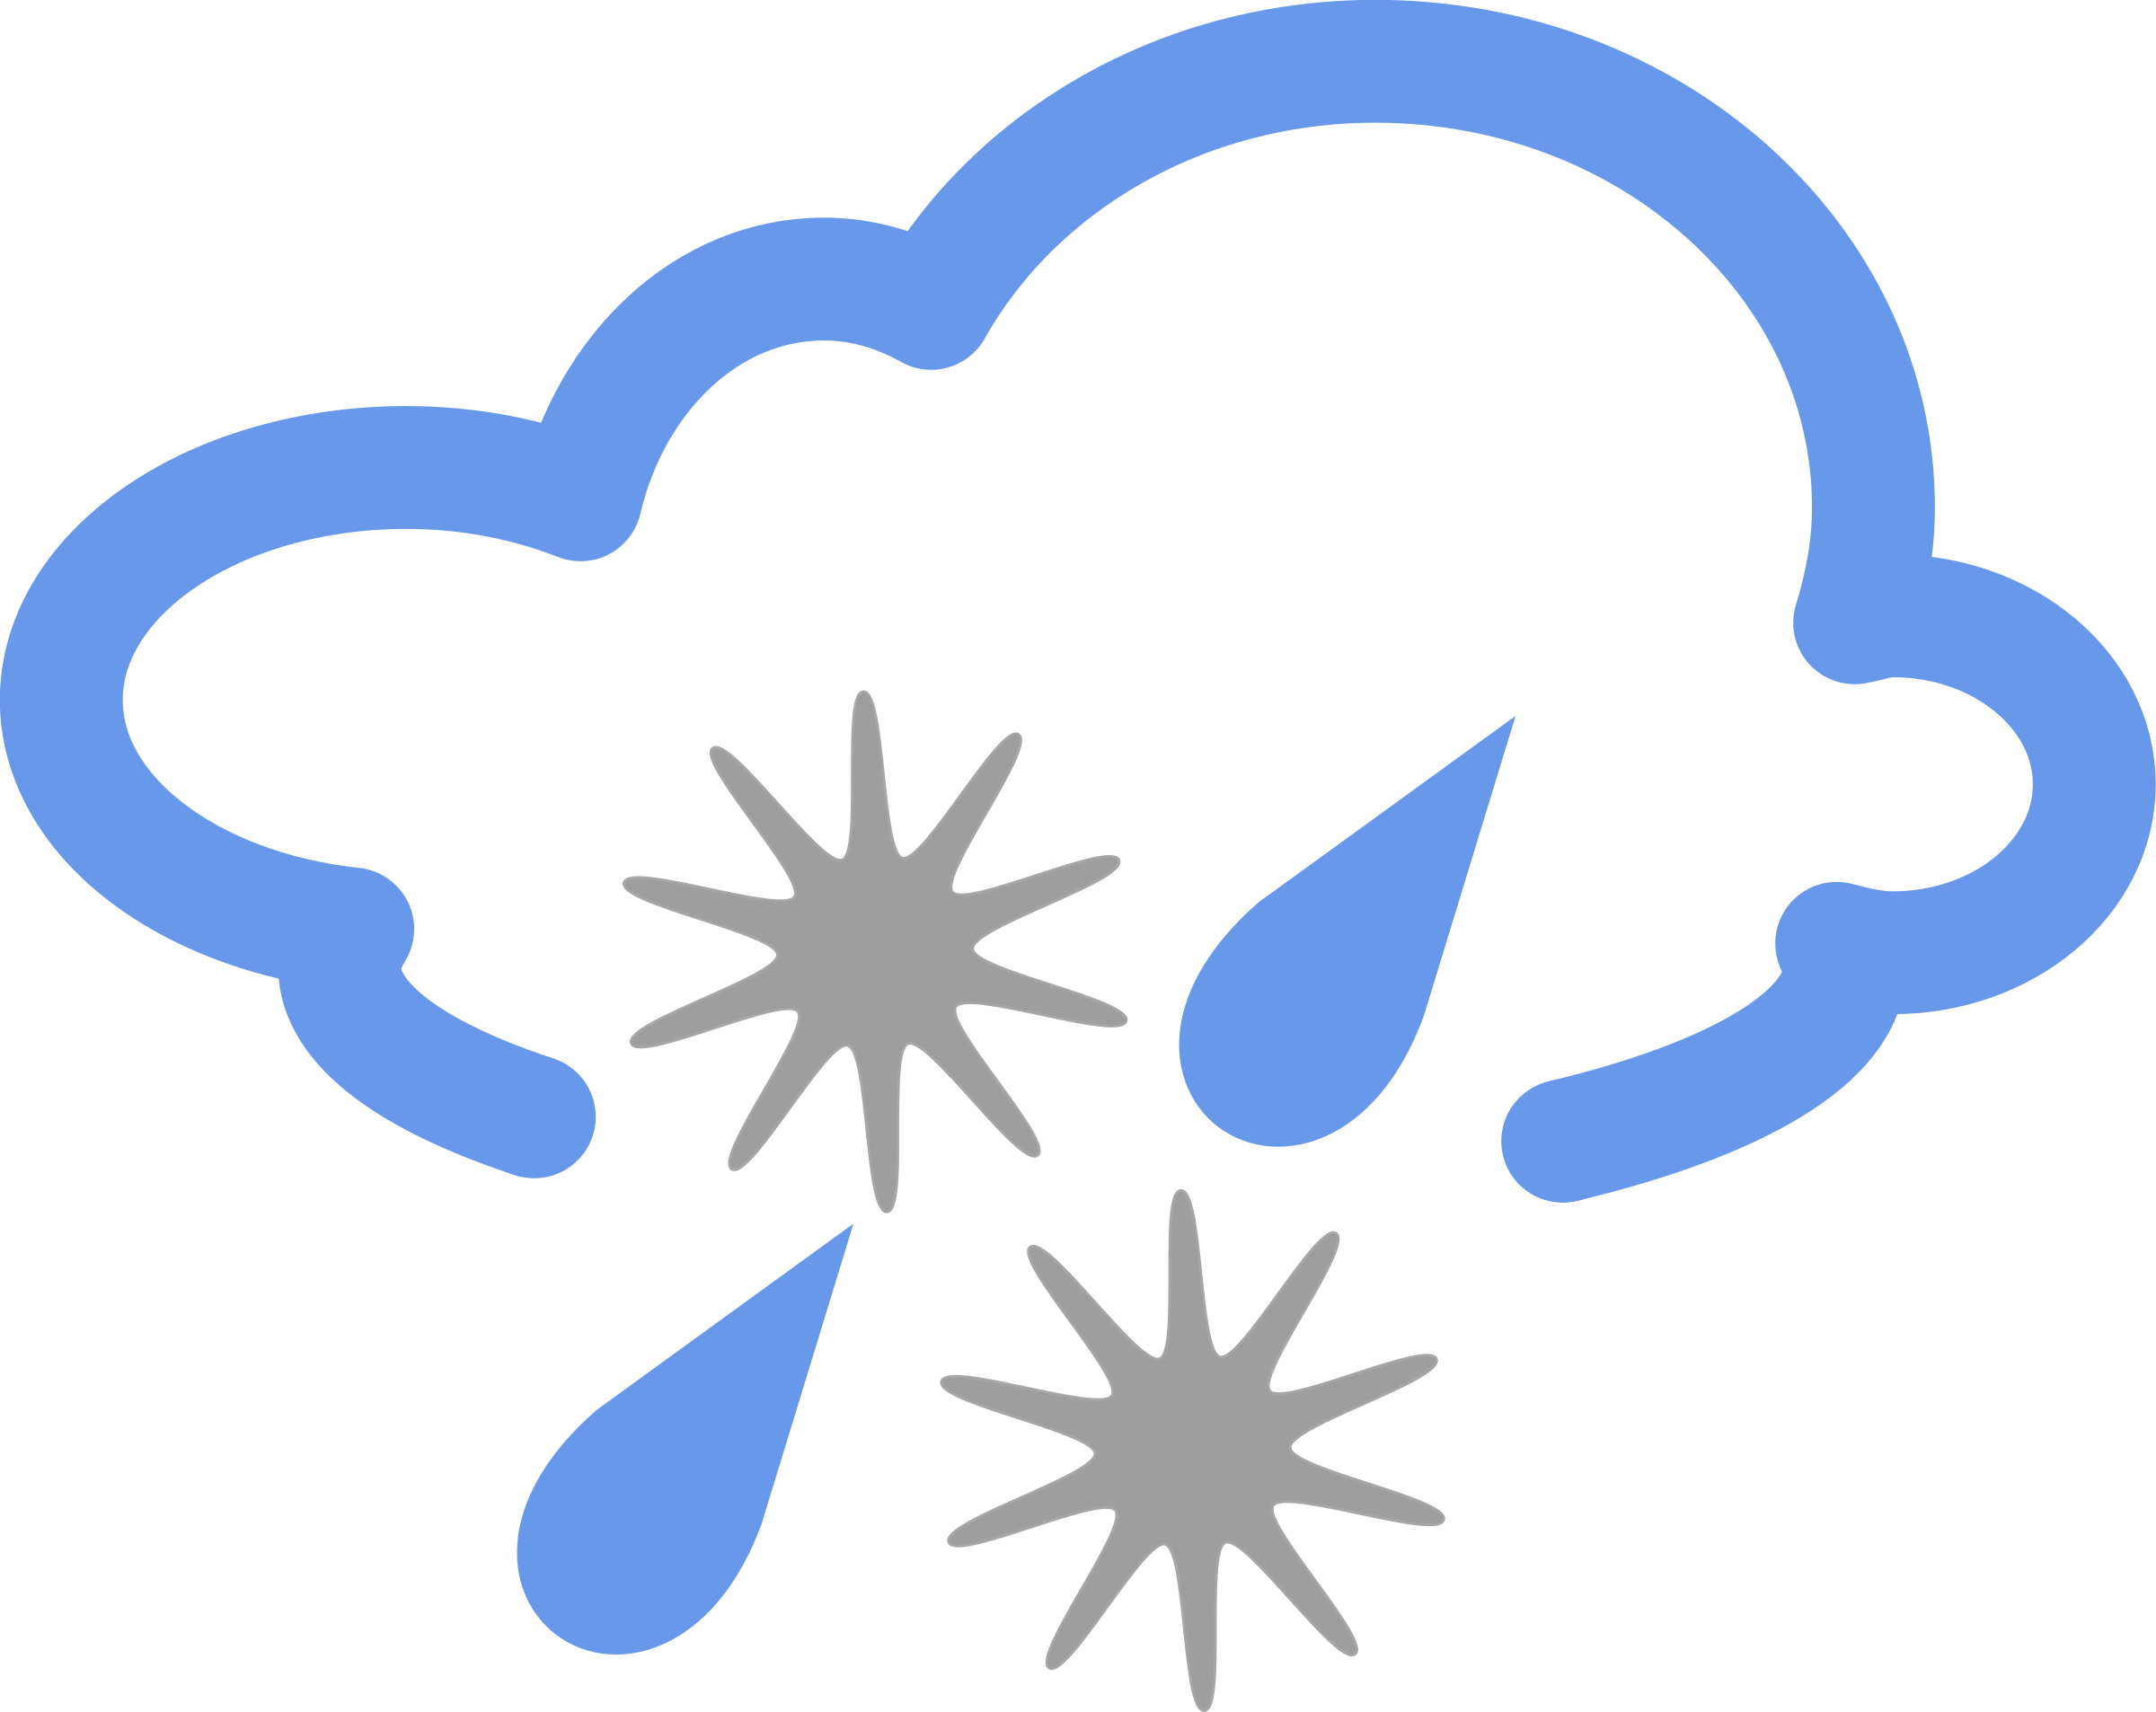 Clipart sun and snow royalty free download Clipart - simple weather symbols royalty free download